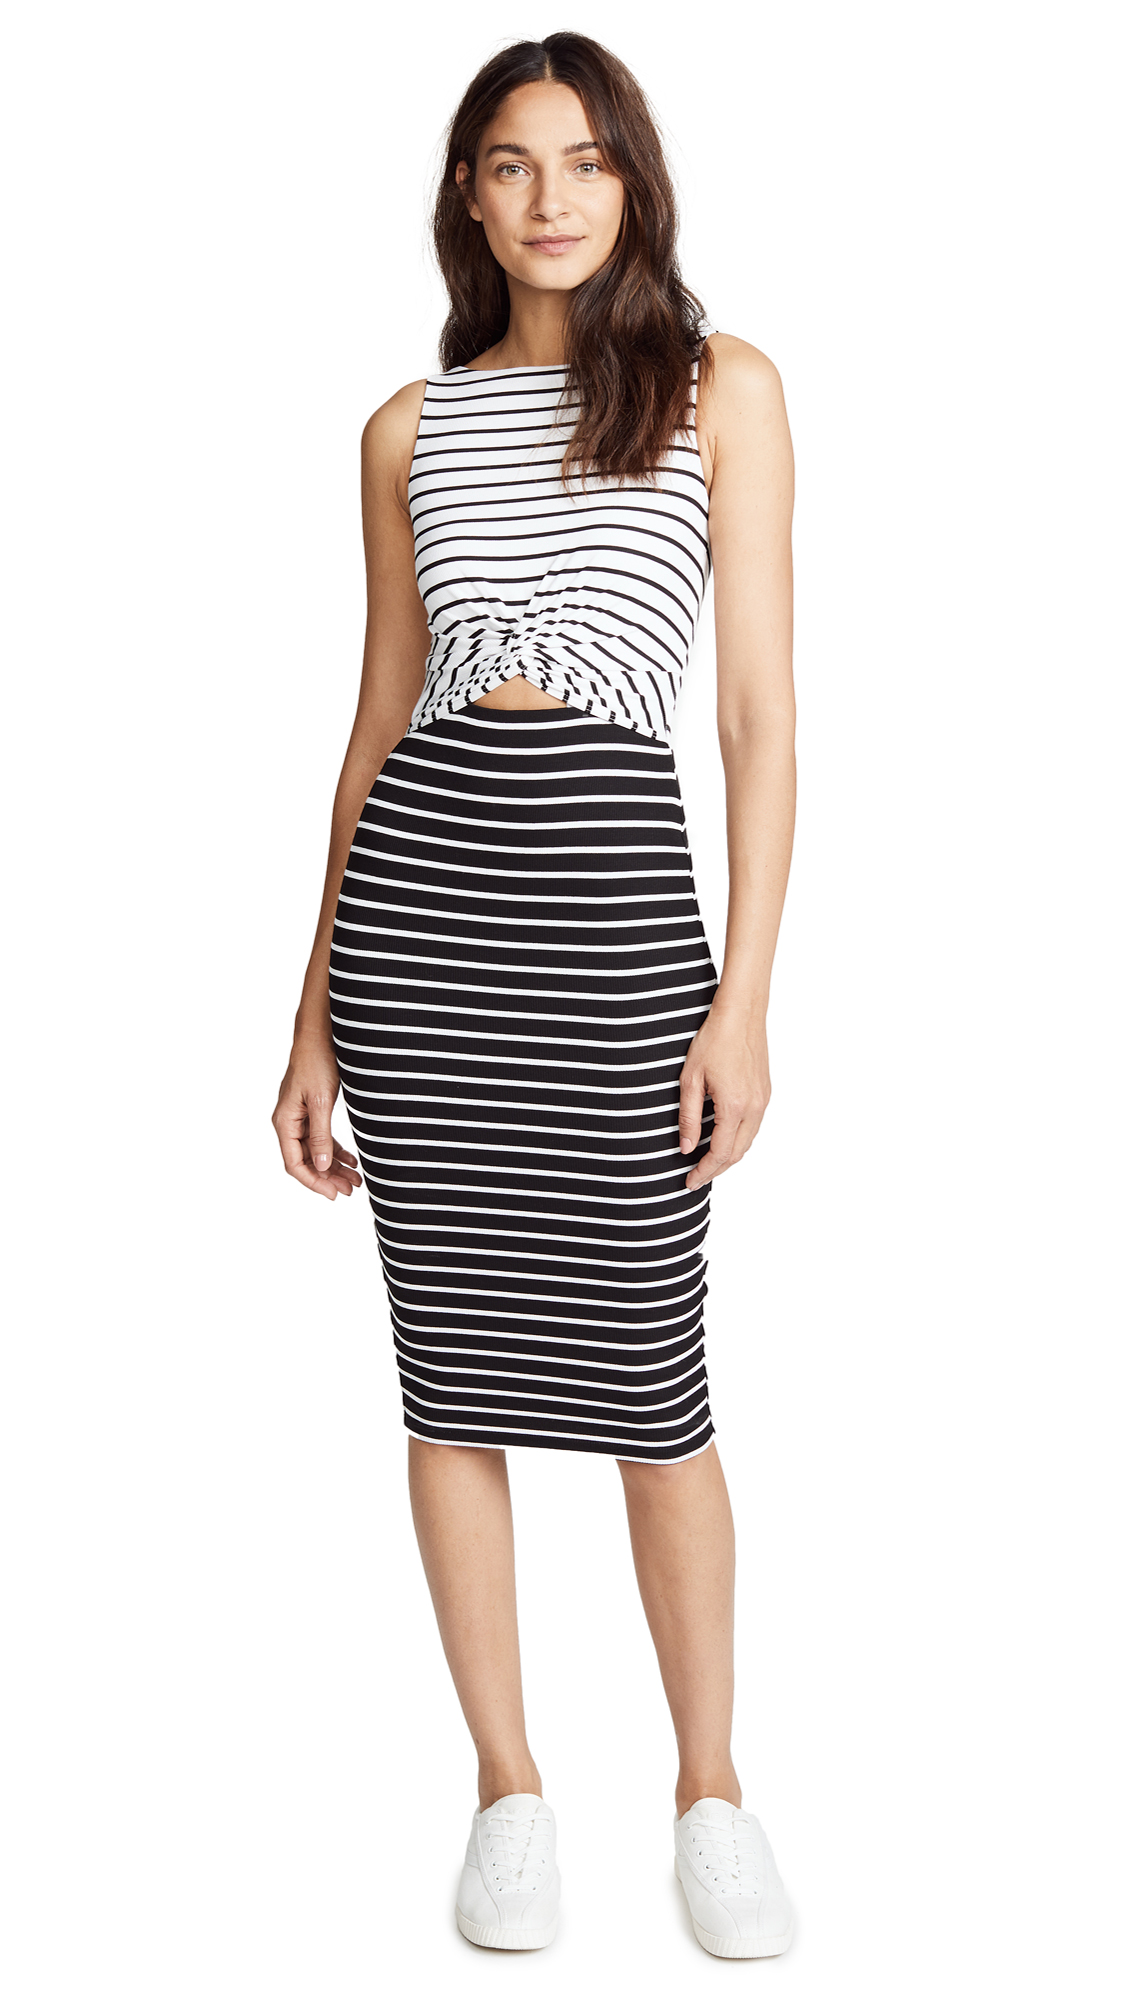 Bailey44 Rabbit Hole Dress In White/Black